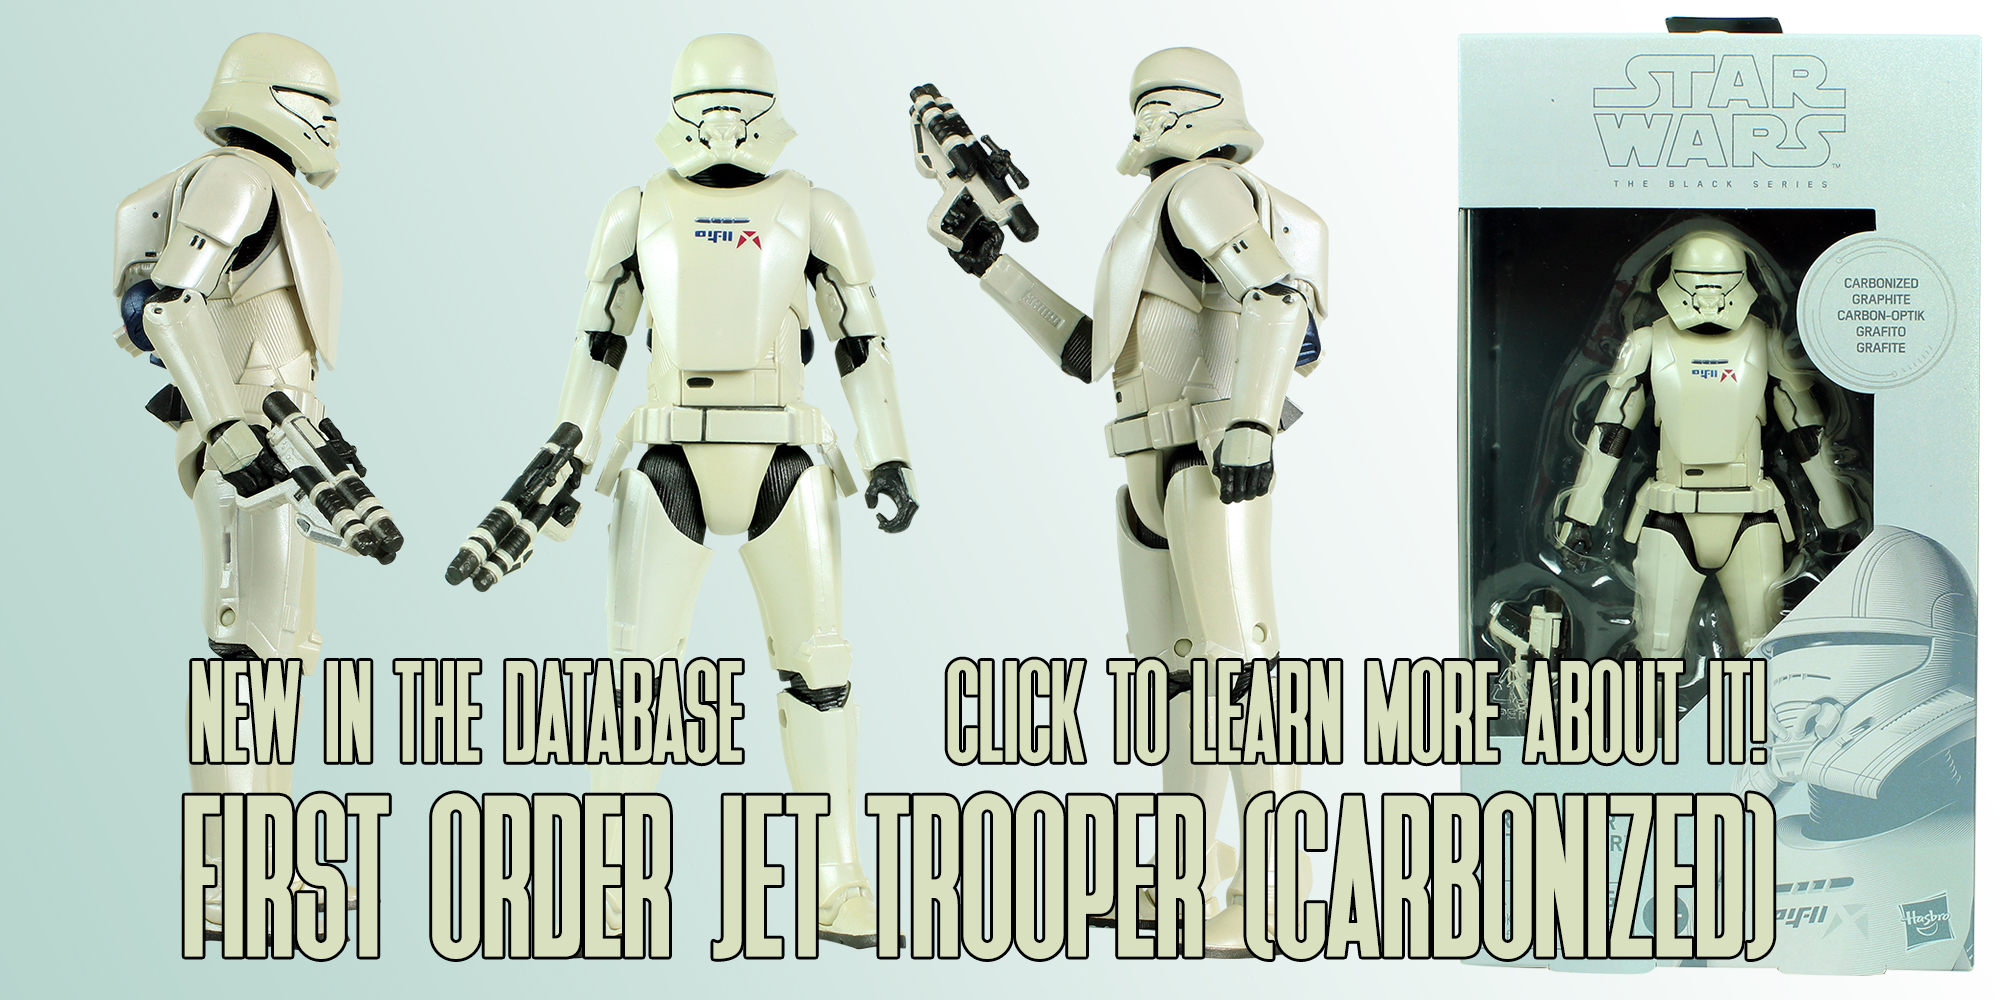 Black Series Jet Trooper Carbonized